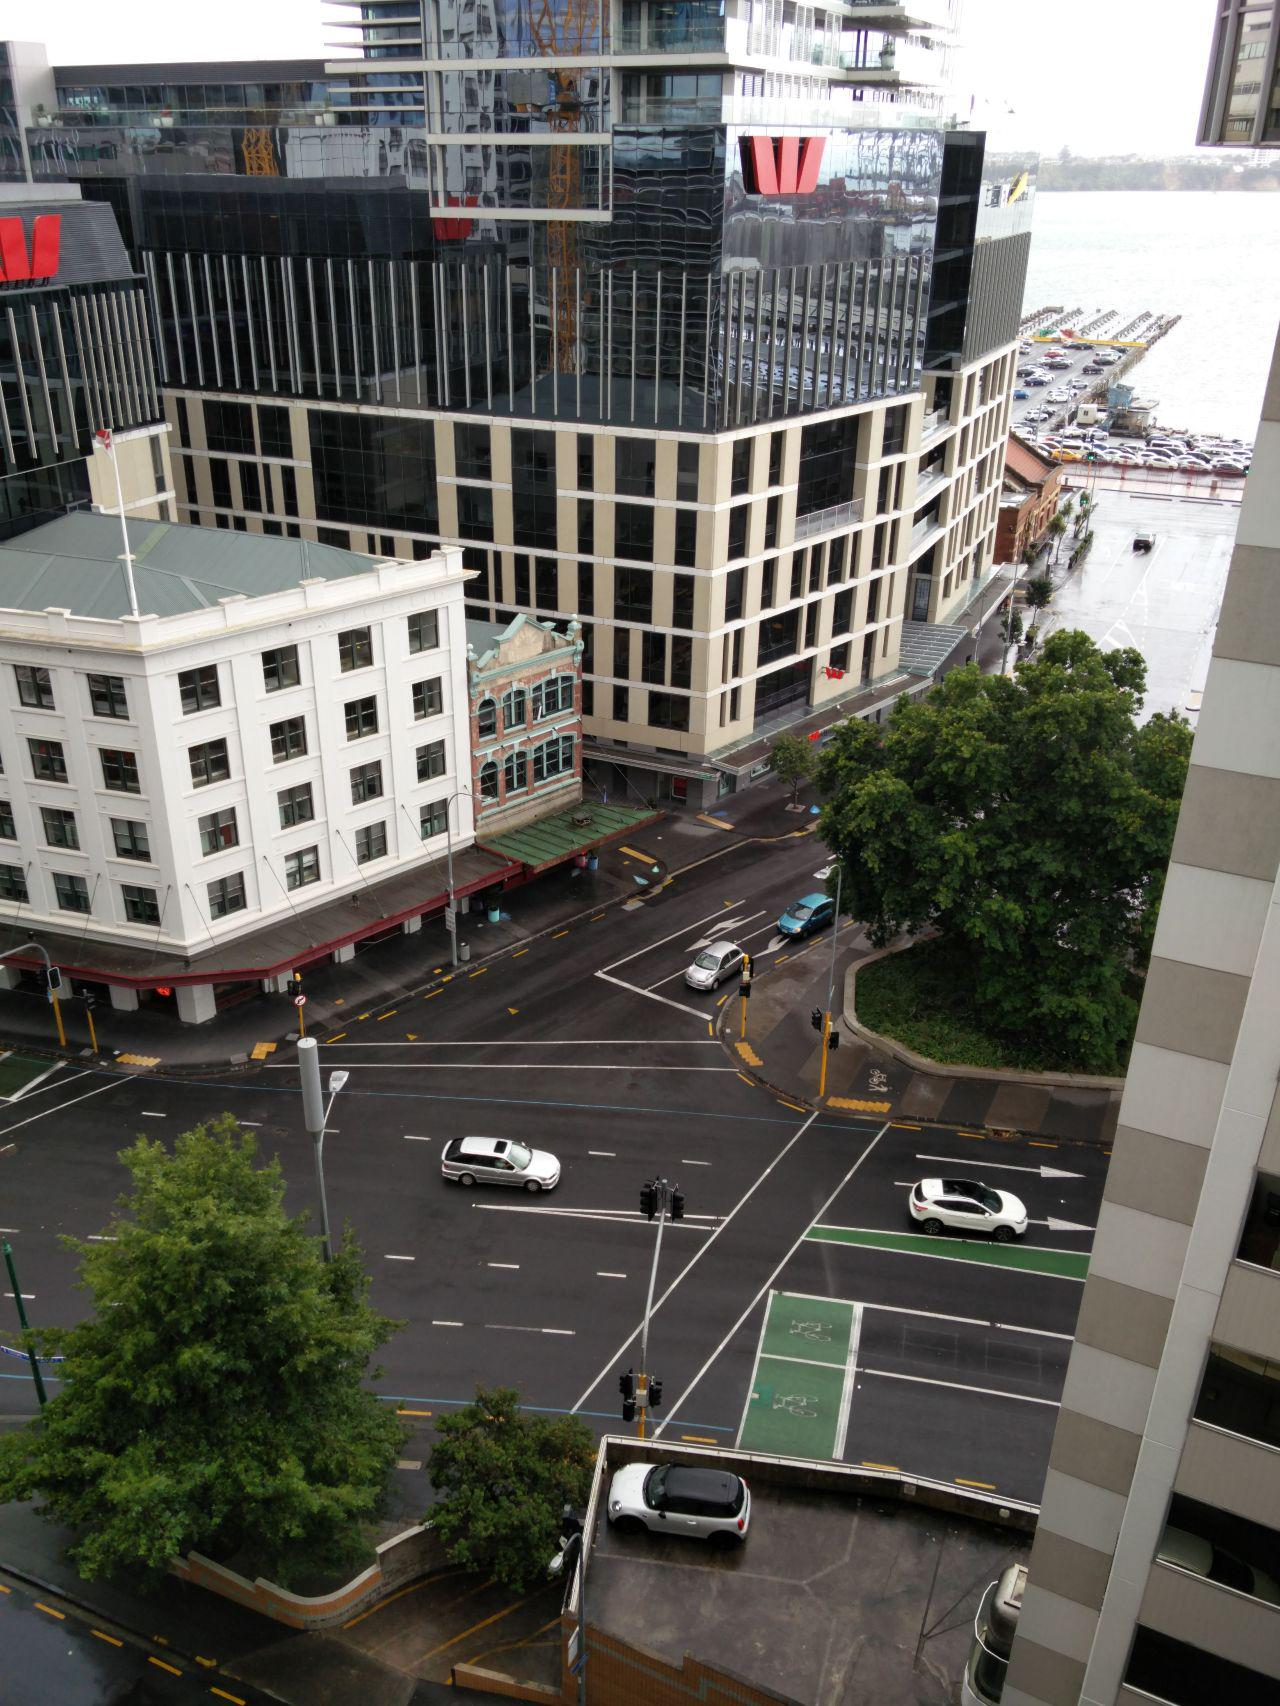 A pause in the Auckland rain